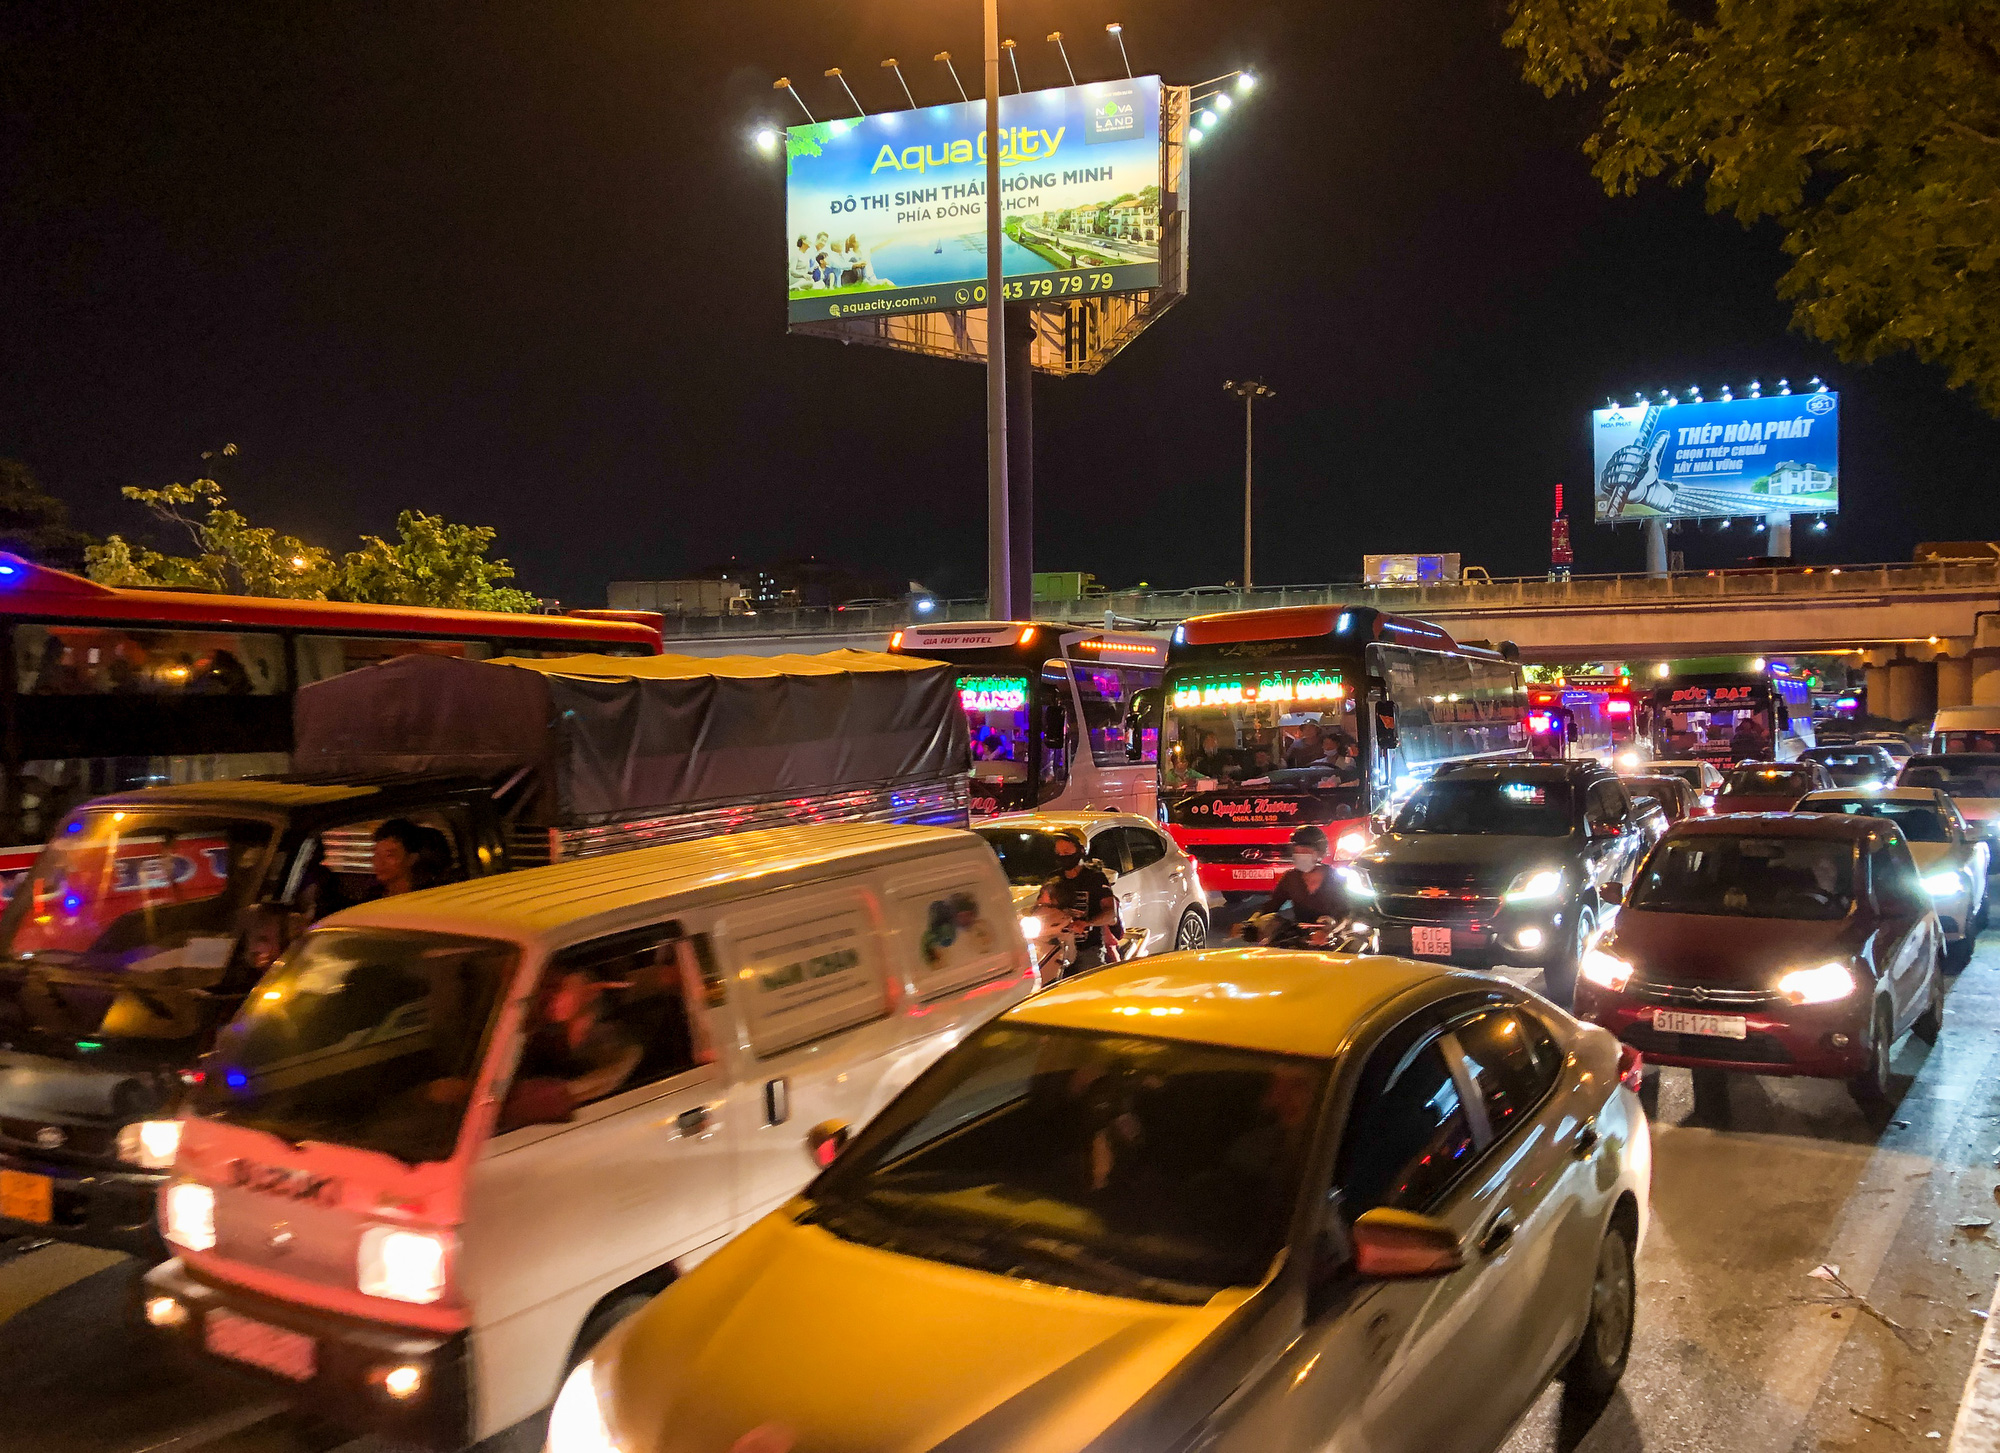 Commuters are stuck in a traffic jam in Binh Thanh District Ho Chi Minh City, April 29, 2021. Photo: Chau Tuan / Tuoi Tre